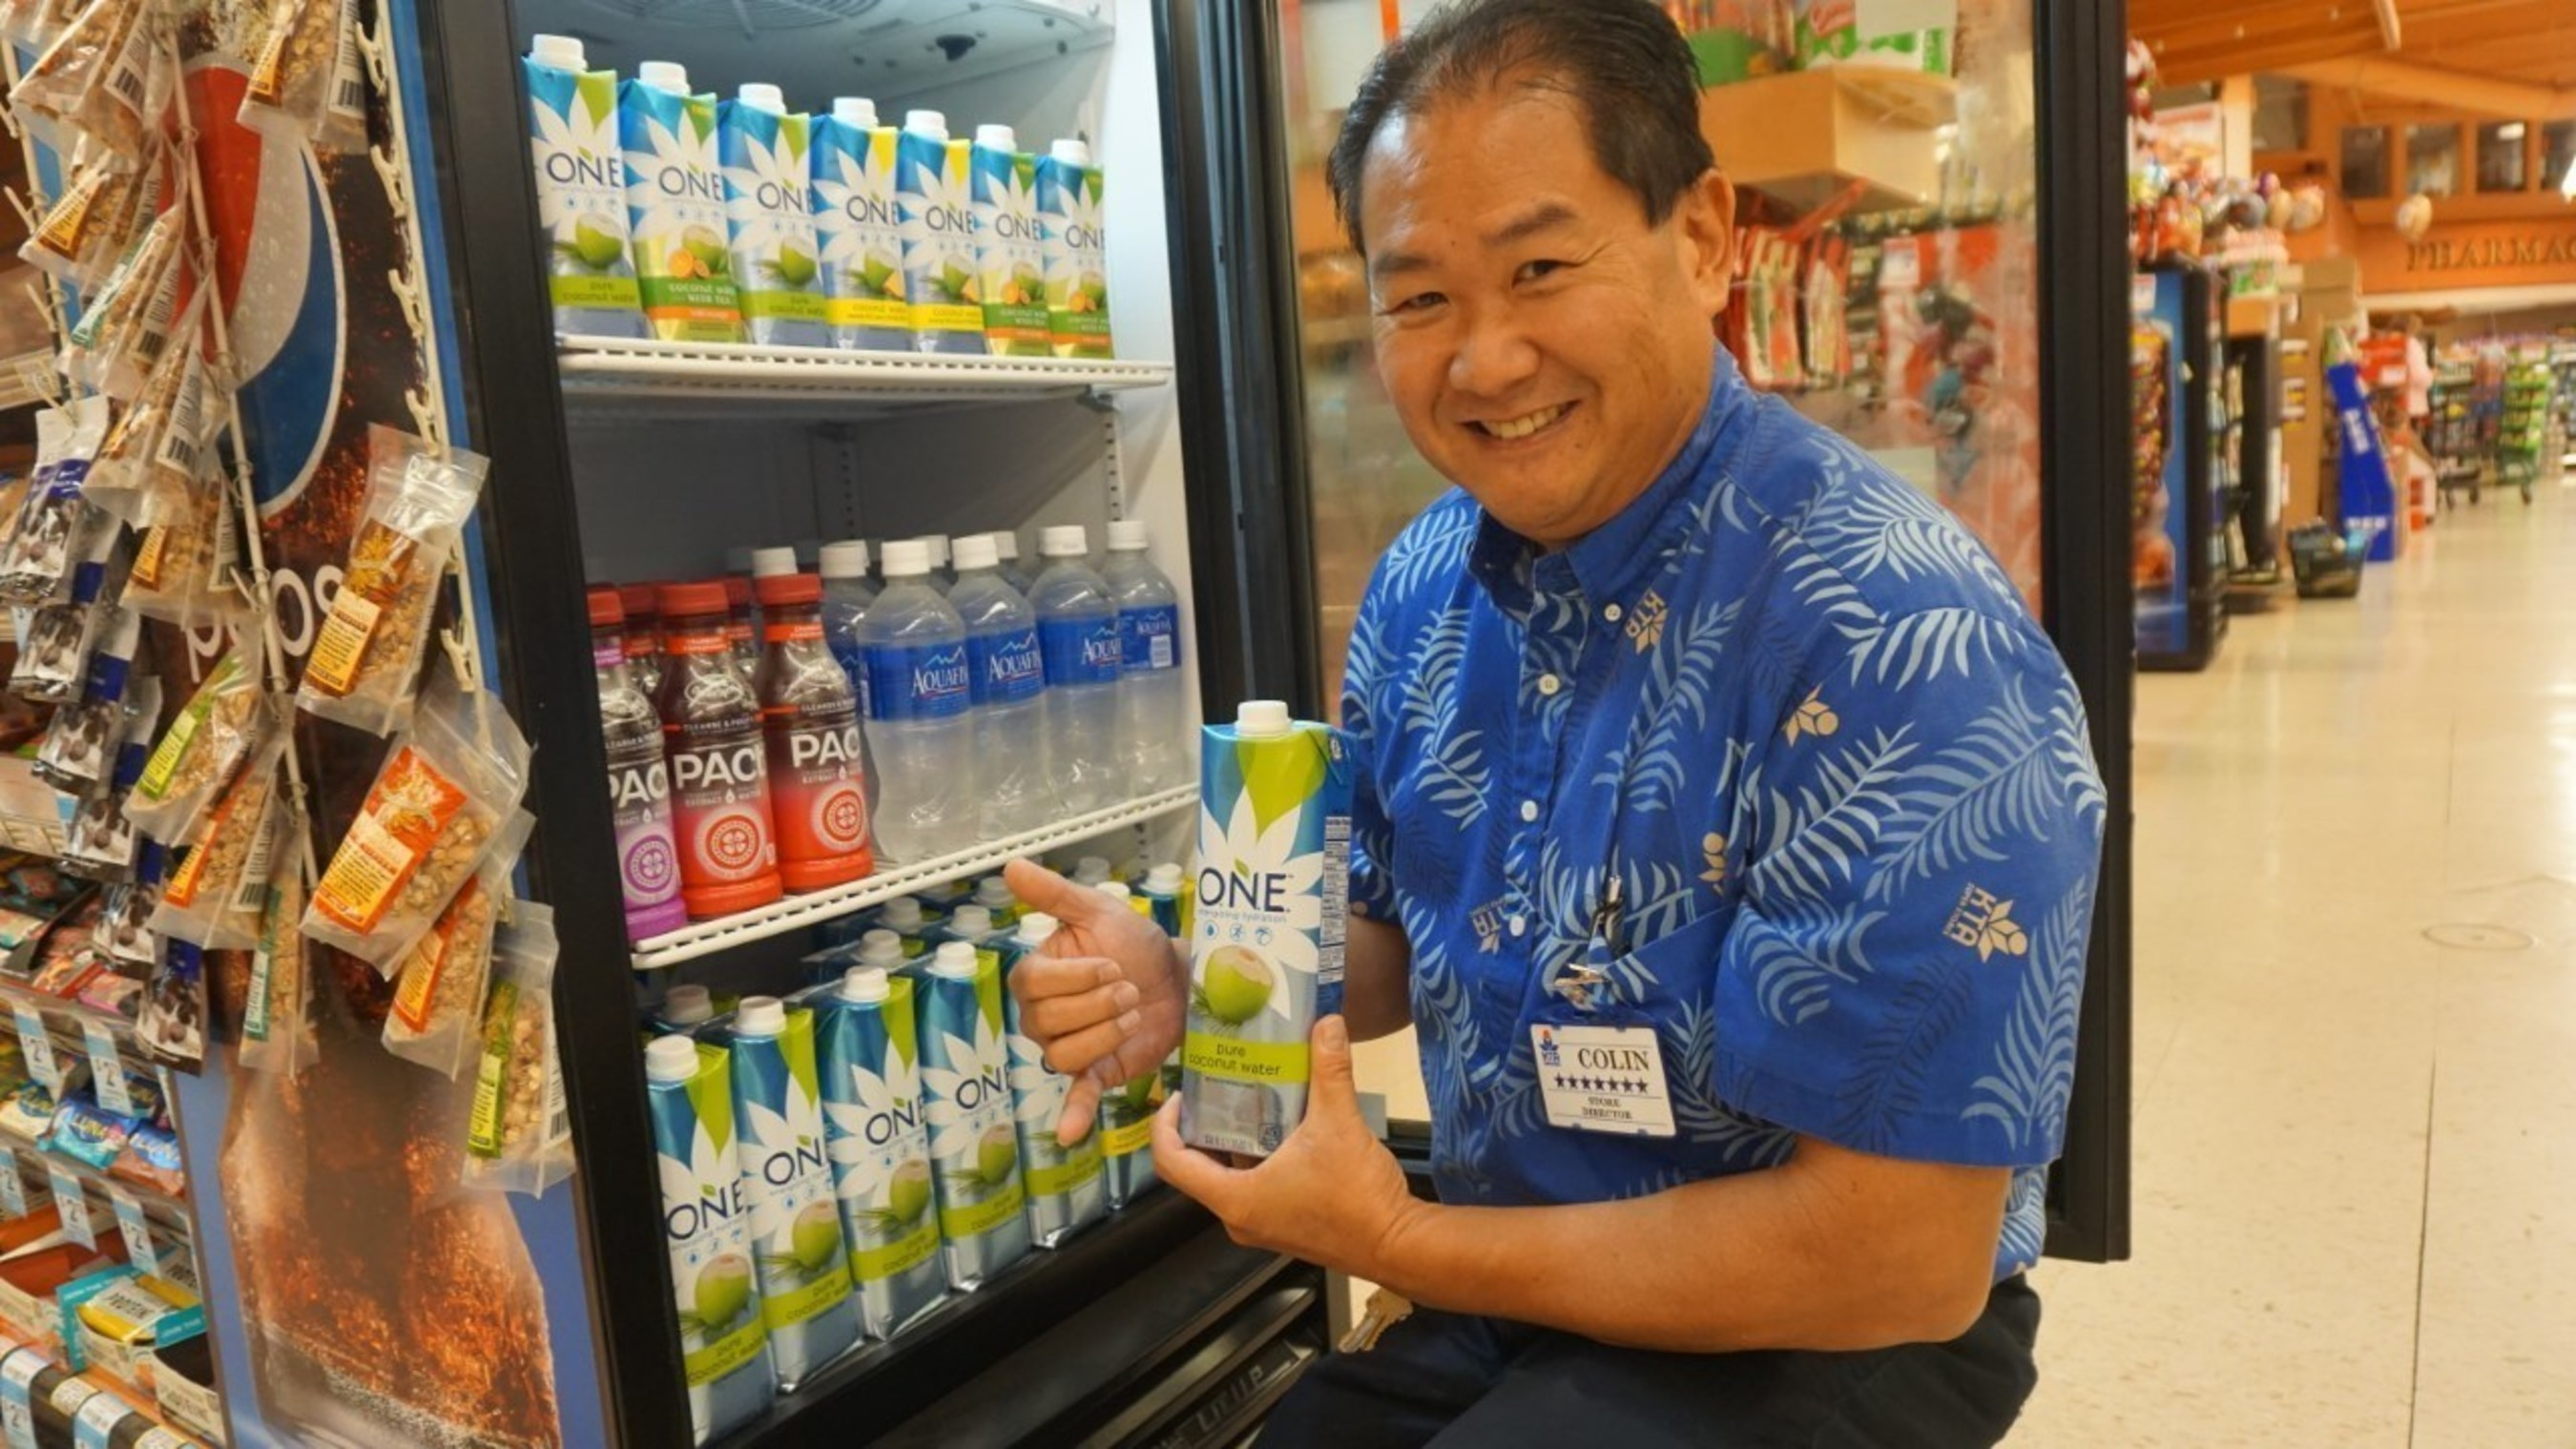 The sale of bottled water, fruit, and nuts are on the rise at KTA, a Blue Zones Project Approved grocery store in Waimea, Hawaii. Store director Colin Miura stocks a new end cap designed to nudge shoppers to choose water over sugary sodas. Grocers like KTA are adopting best practices throughout their stores that benefit customer well-being while giving stores a competitive edge. Grocery stores are an important part of Blue Zones Project, a nationwide well-being improvement initiative based on lifestyles...